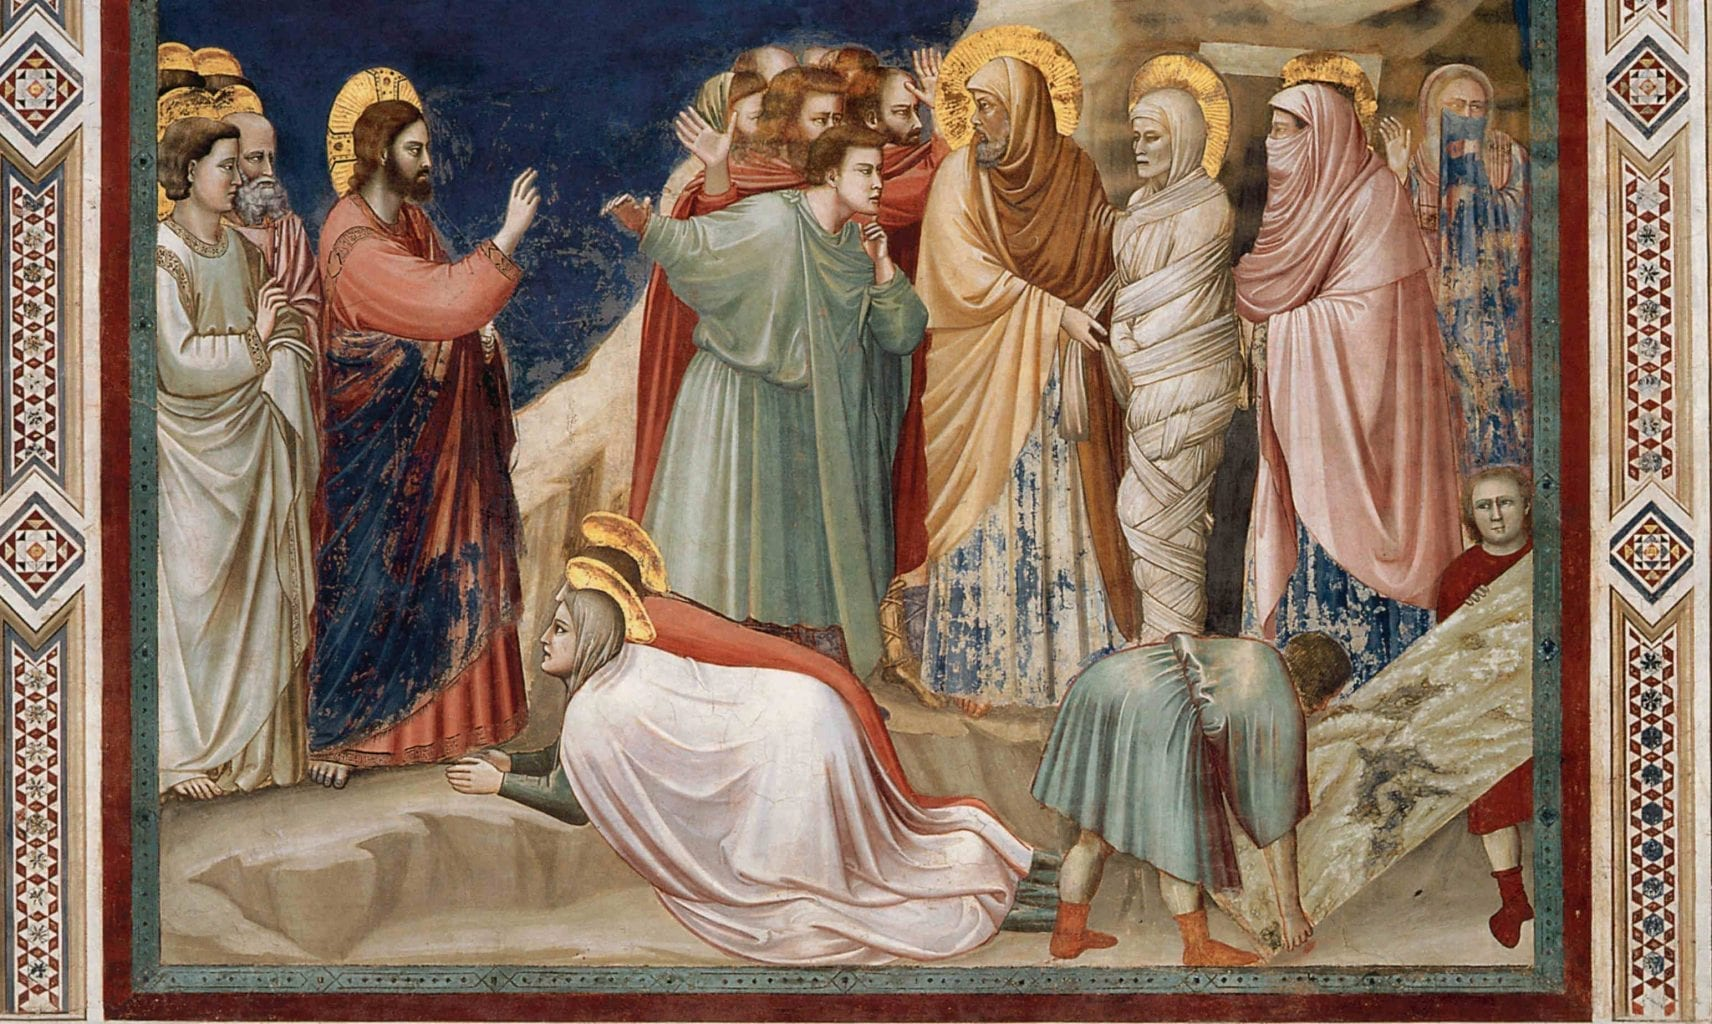 Raising of Lazarus - Death & Resurrection - Crossroads Initiative